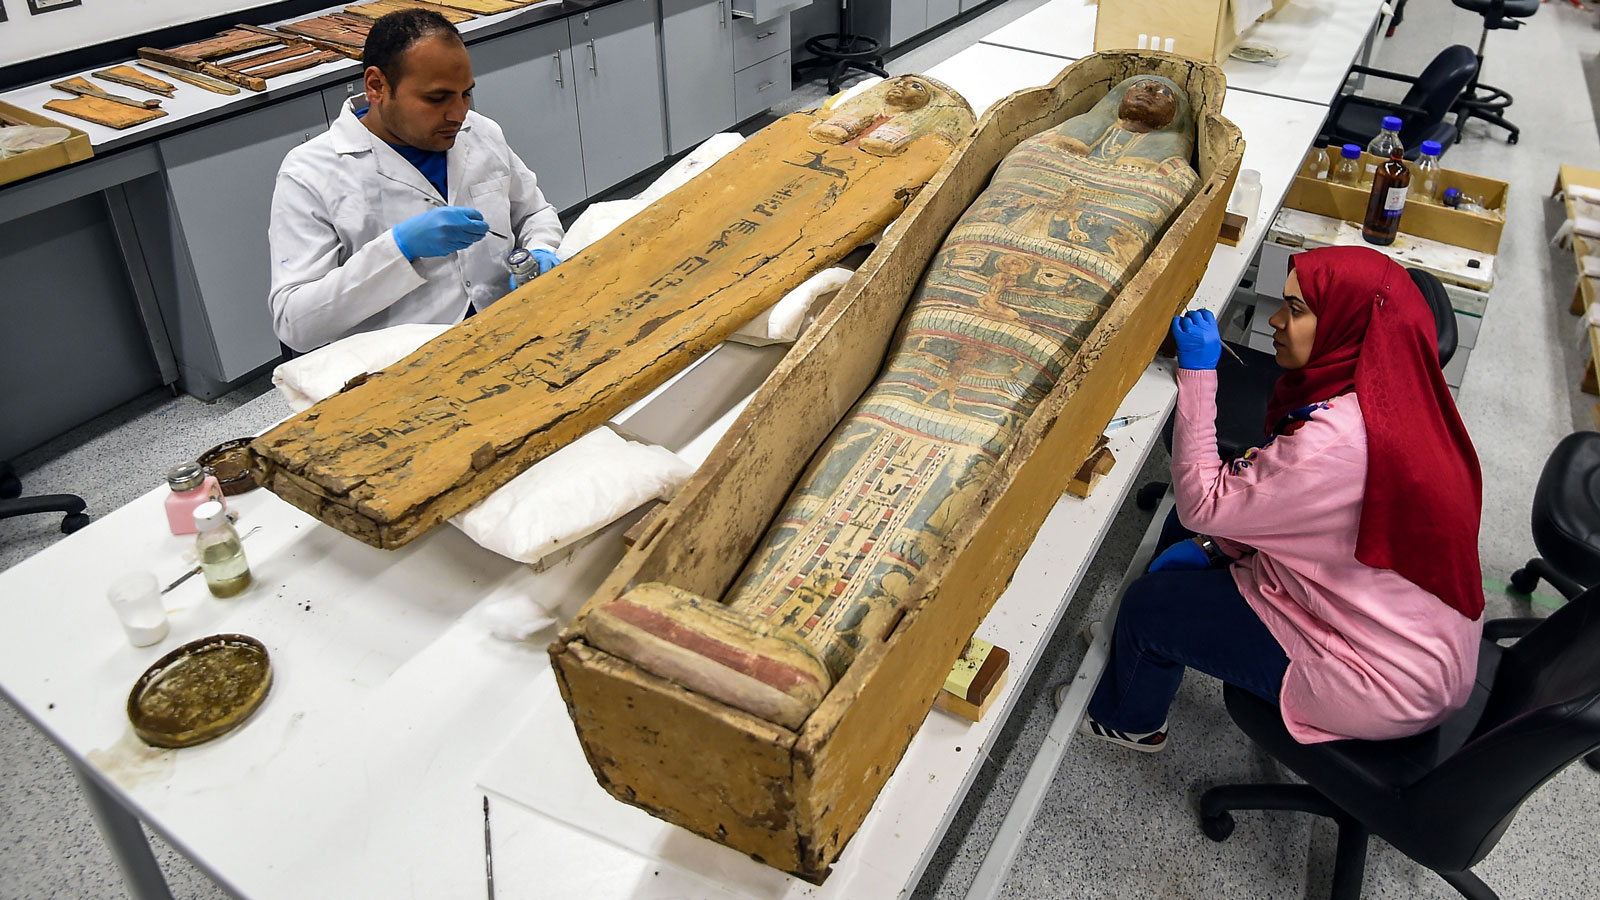 Grand Egyptian Museum in Cairo: 'Secret' tour takes travelers inside